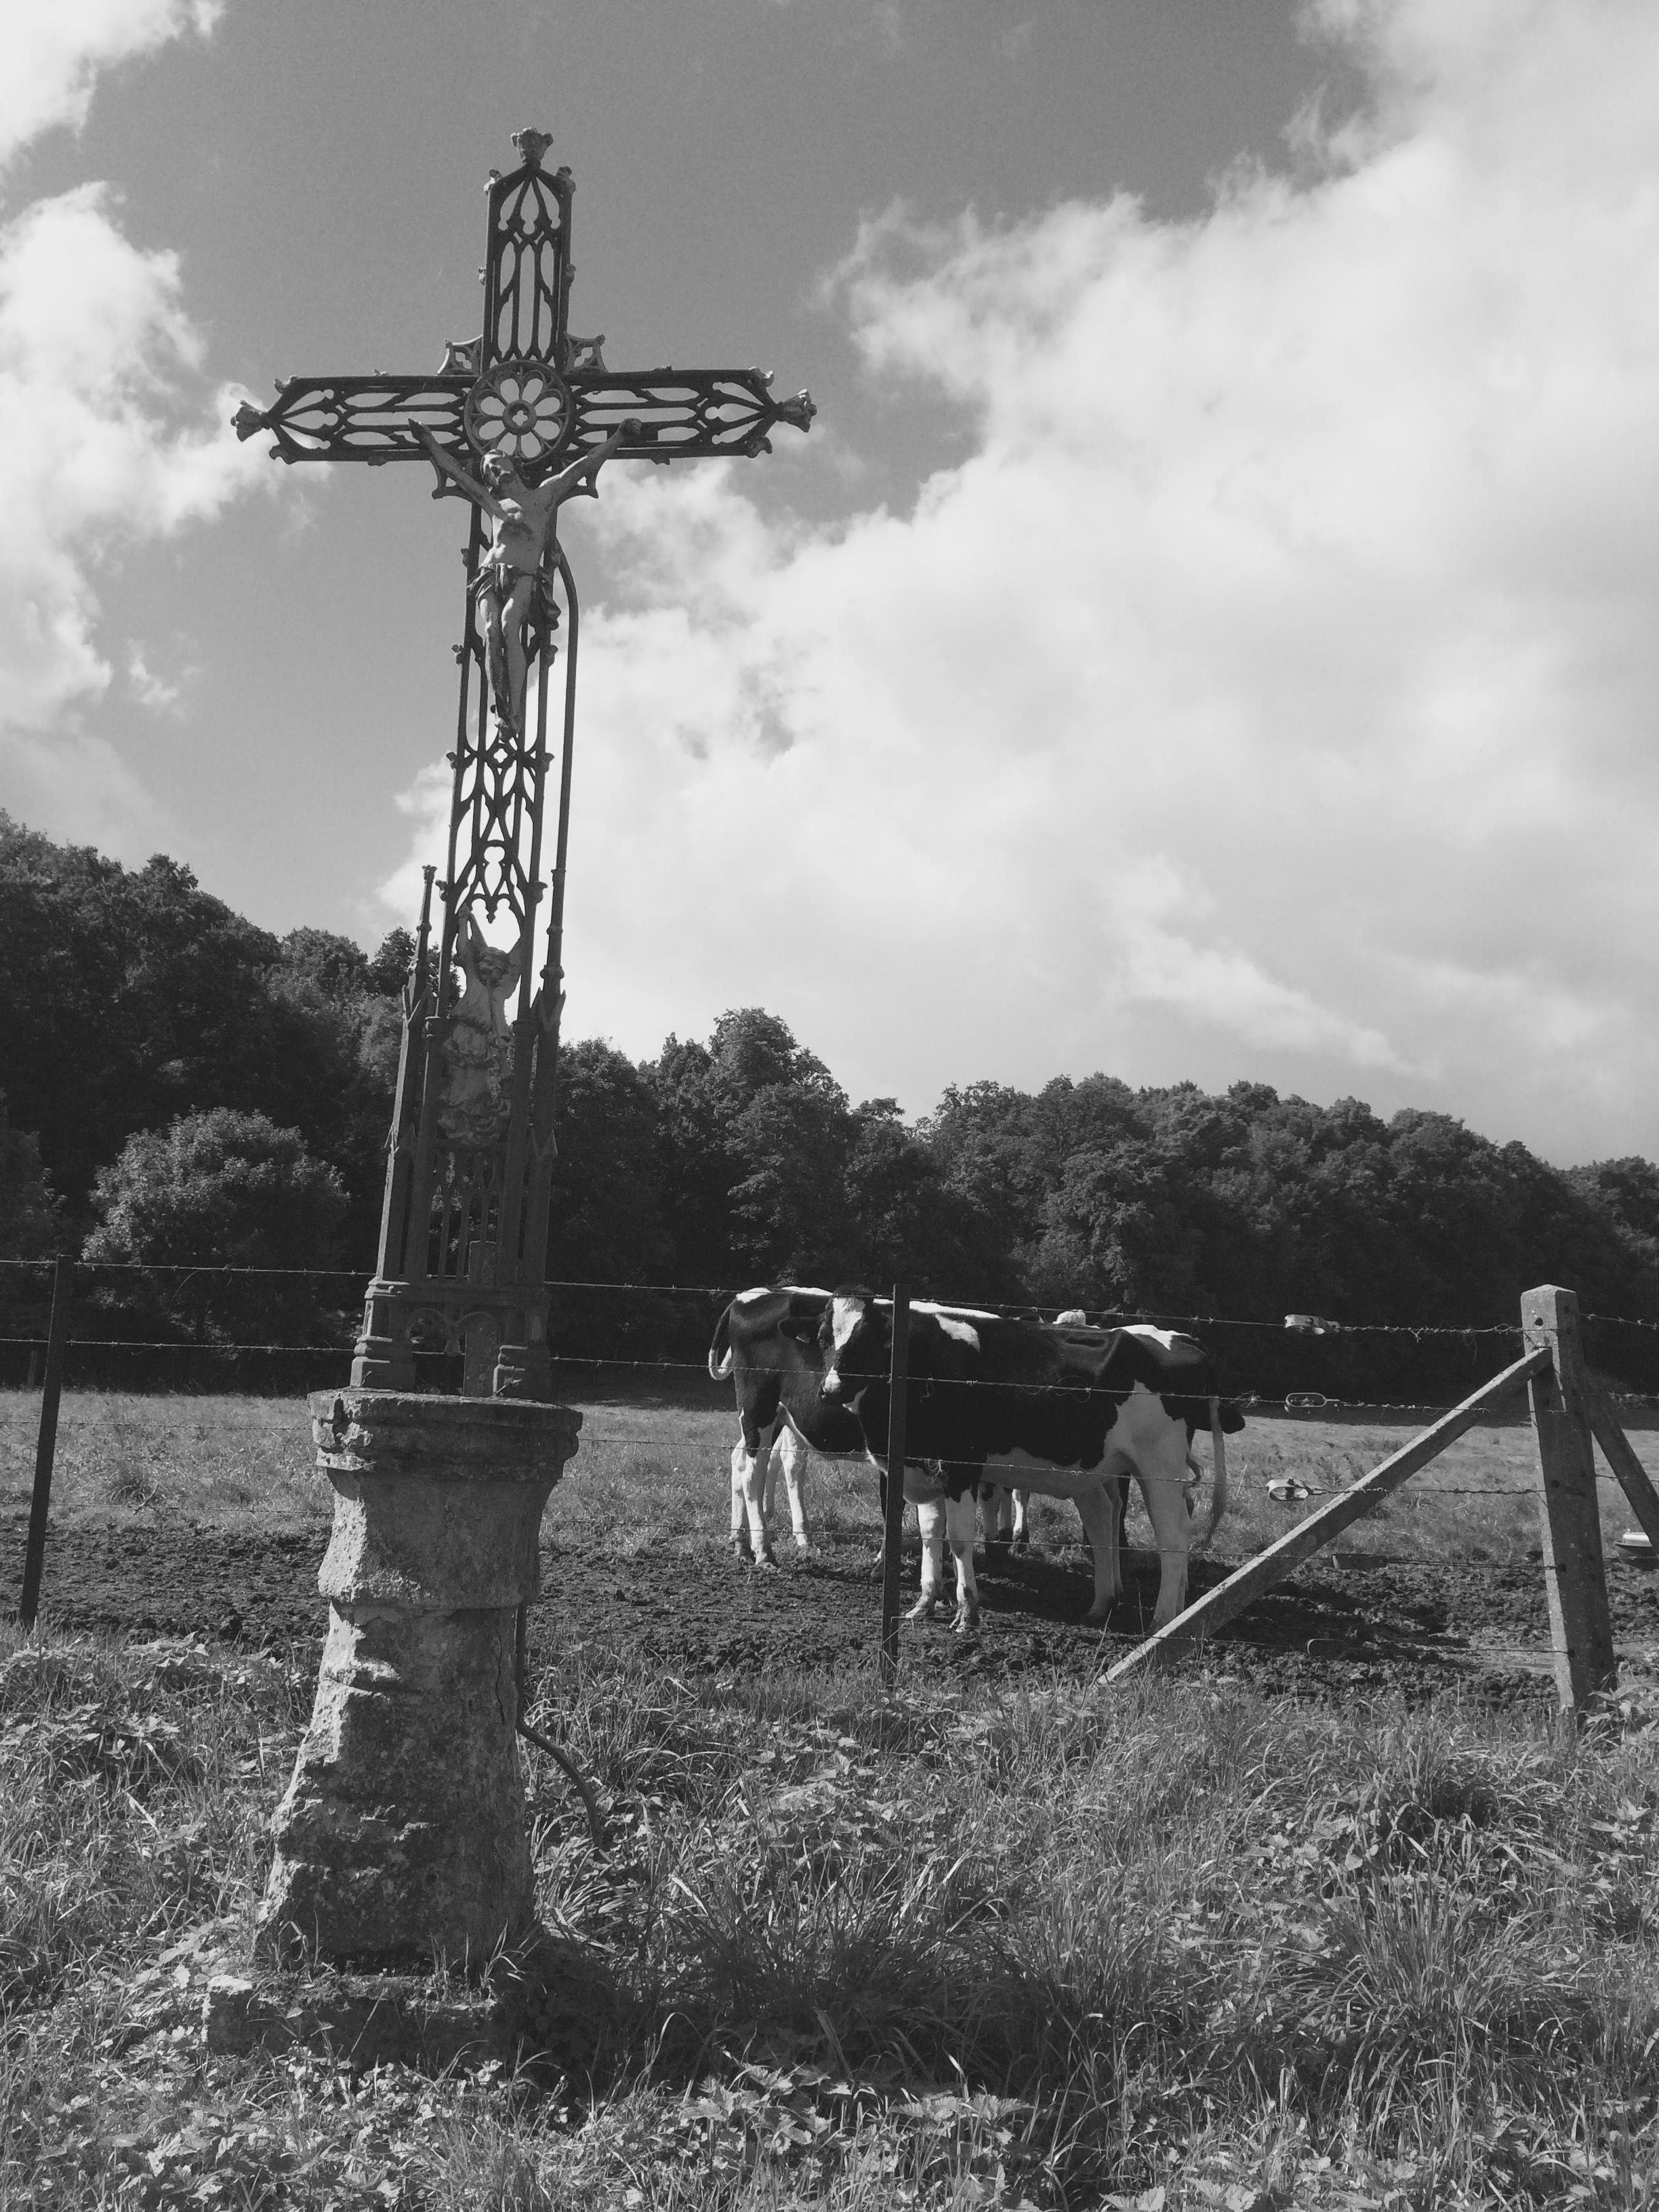 Wedding decorations yellow and white november 2018 Picard cows mooooooo  Discover Vallée de la Selle  Amiens  Somme